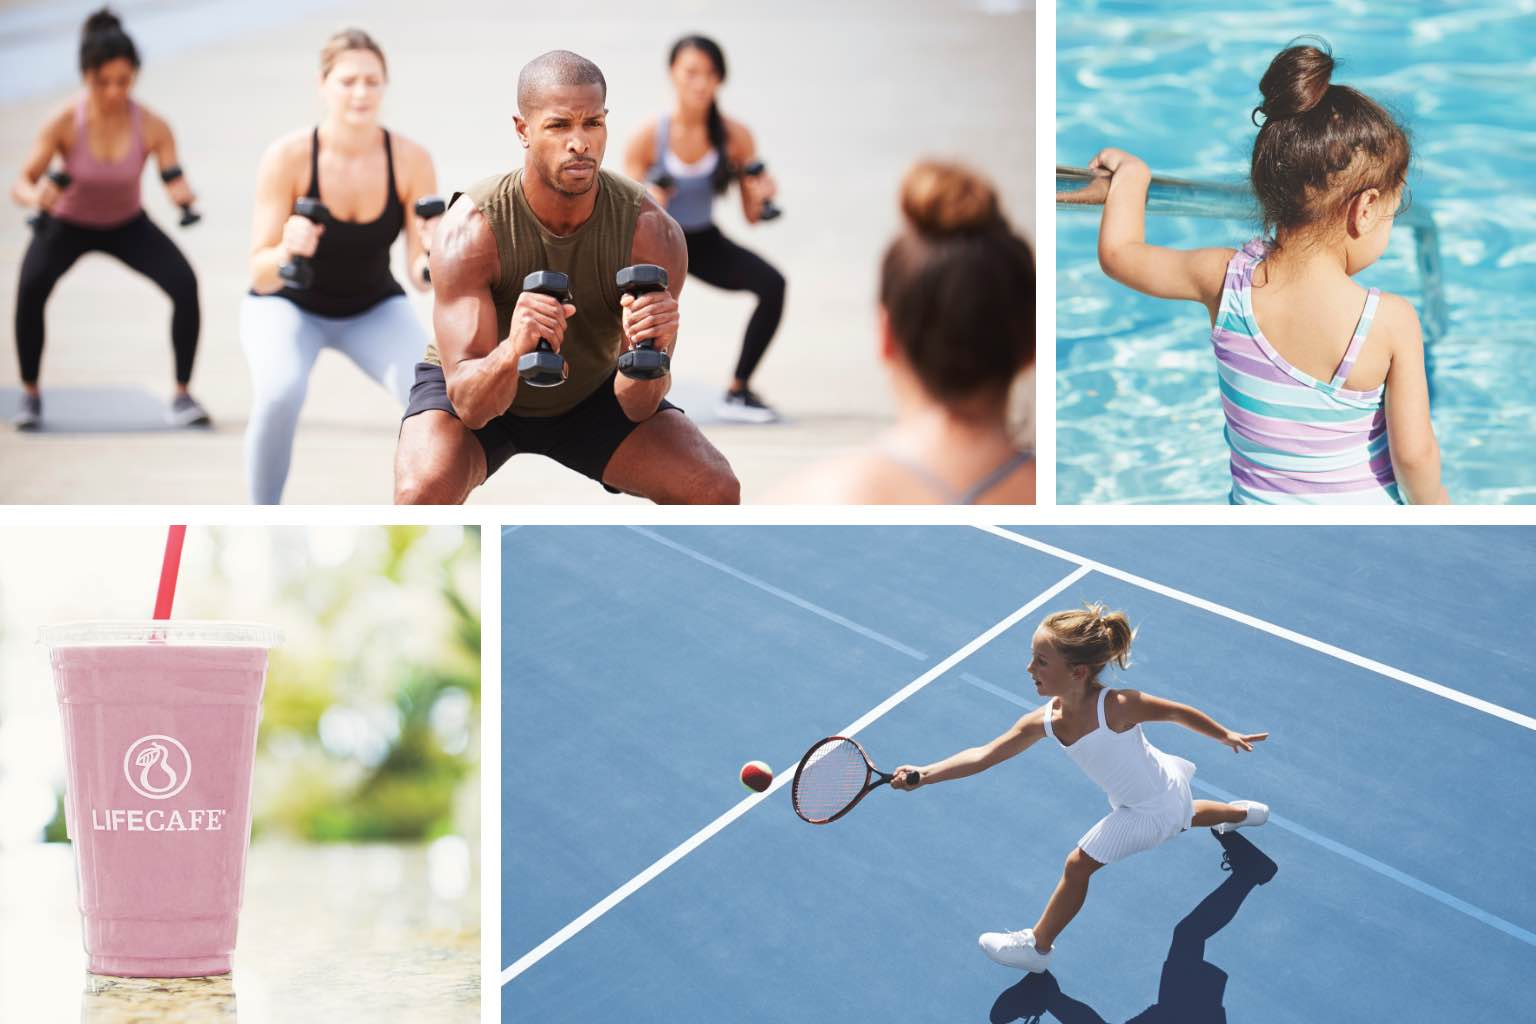 Image collage with four images. The first features an outdoor workout class. The second shows a little girl walking into a pool. The third features a pink smoothie. The fourth shows a woman playing tennis.